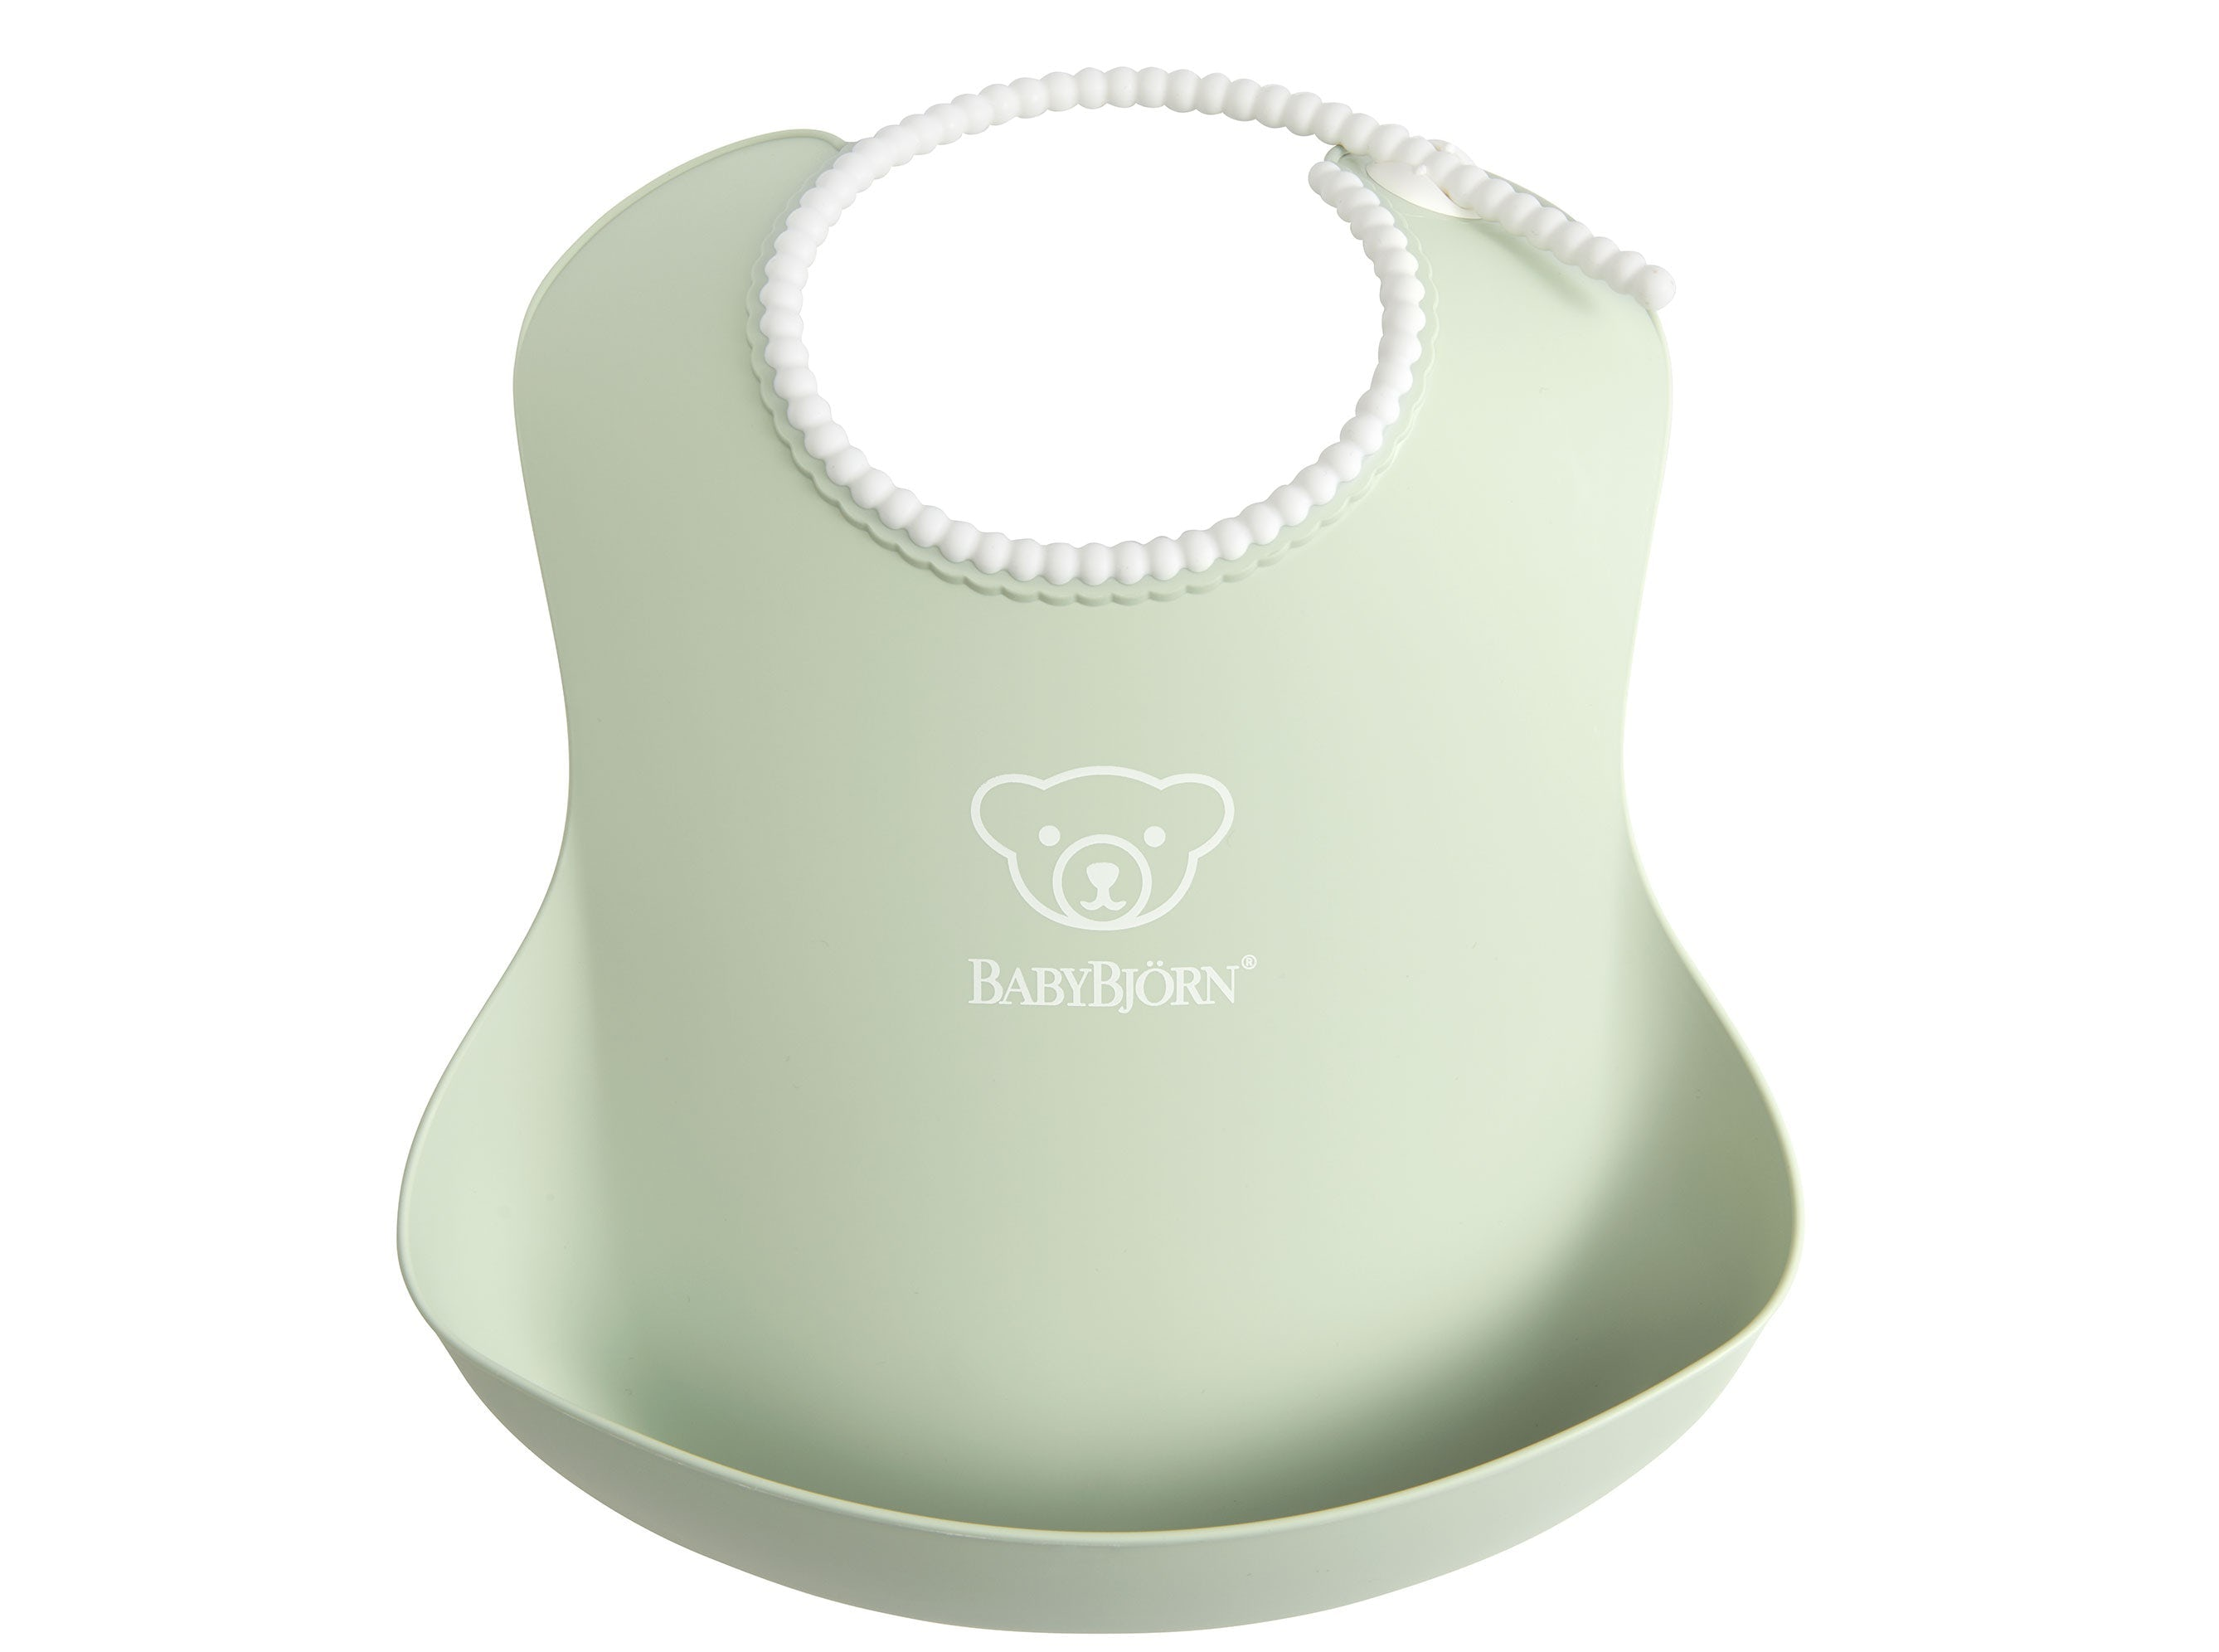 babybjorn-soft-bib-powder-green-1